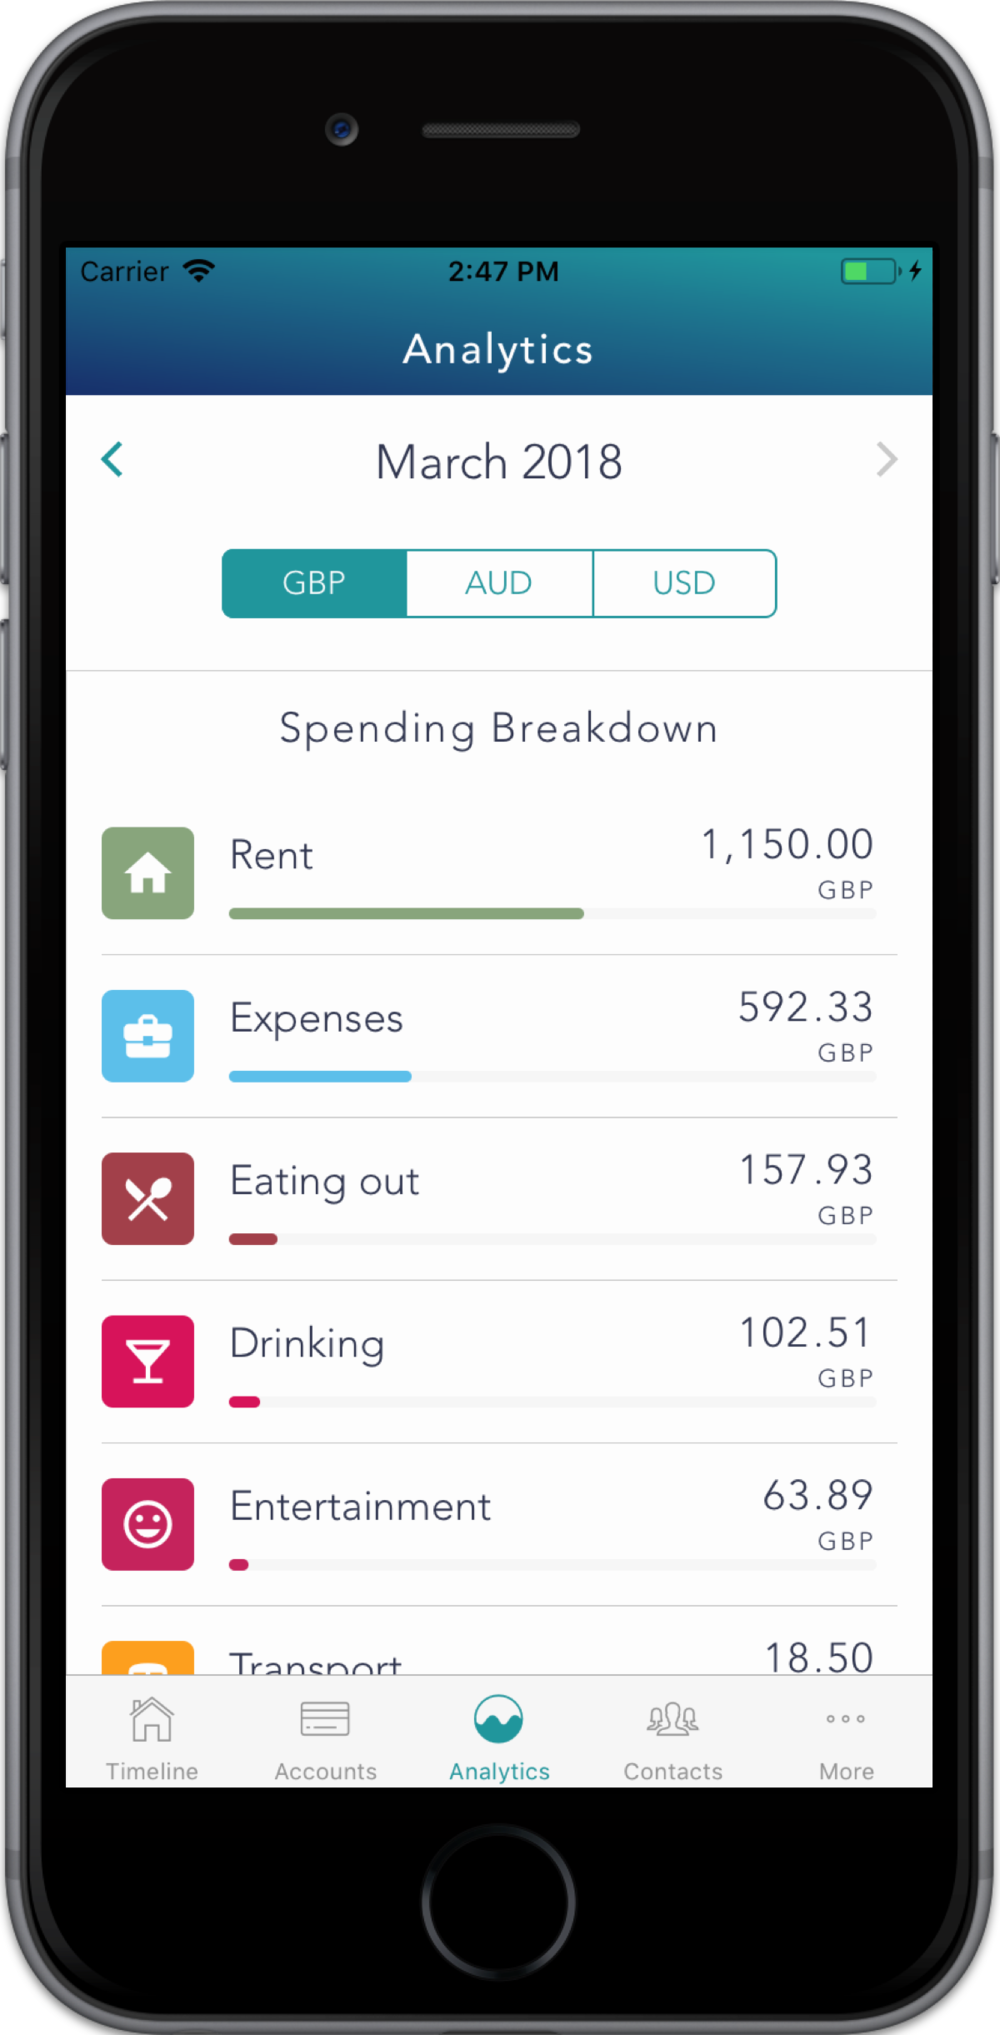 Analytics - Analytics that gives you a high level categorised overview, to help you track where you spend your money.